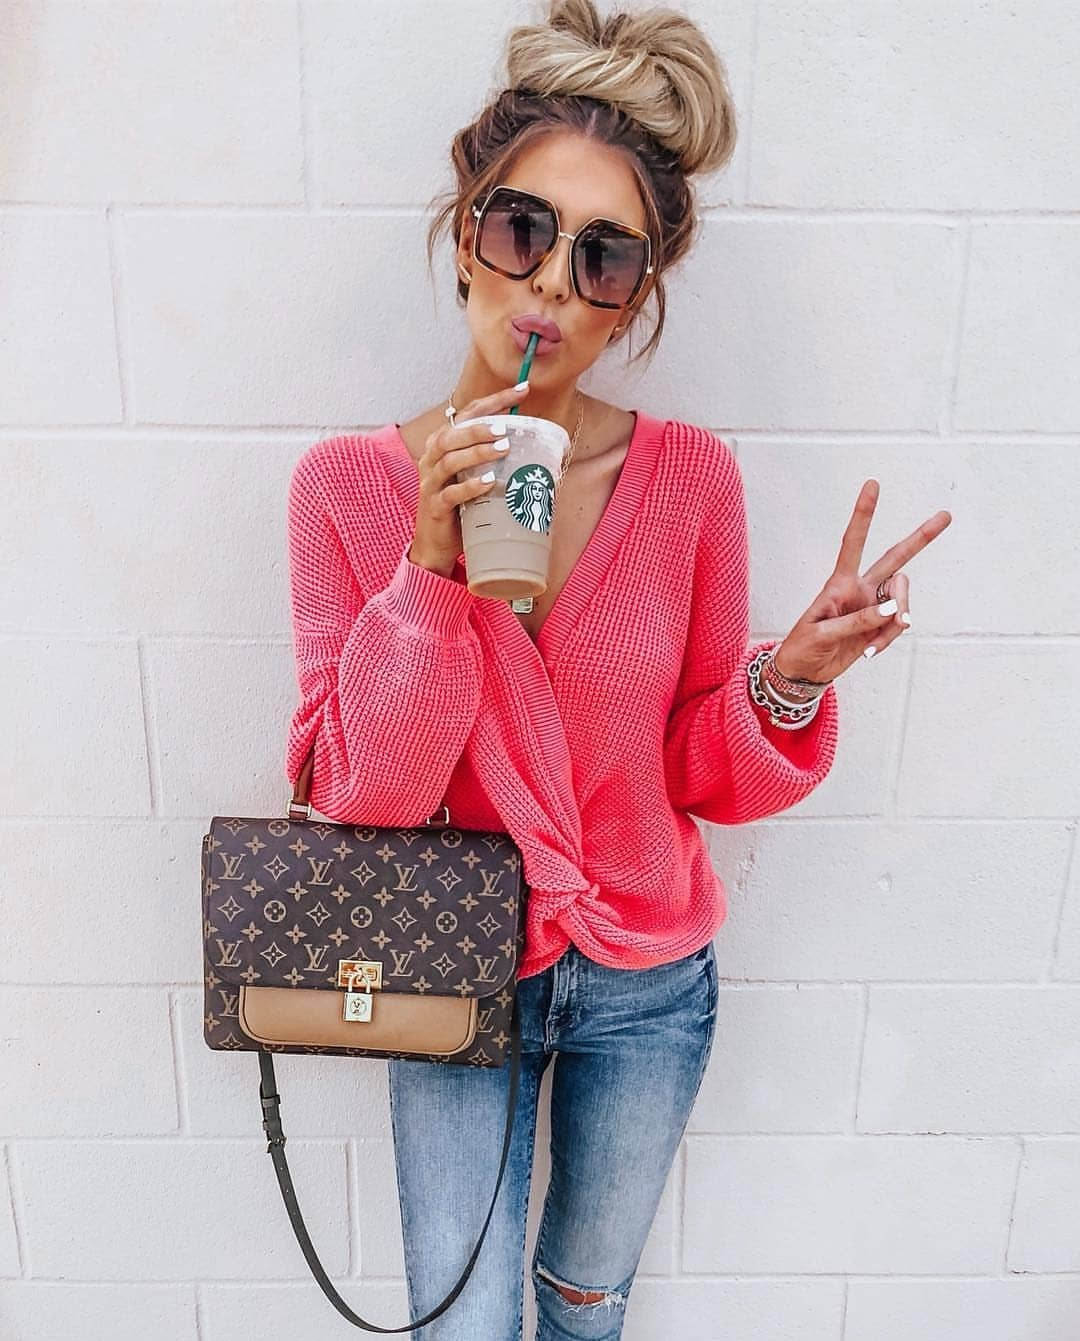 Simple Basics: Hot Pink Cardigan And Blue Slim Jeans For Spring 2019